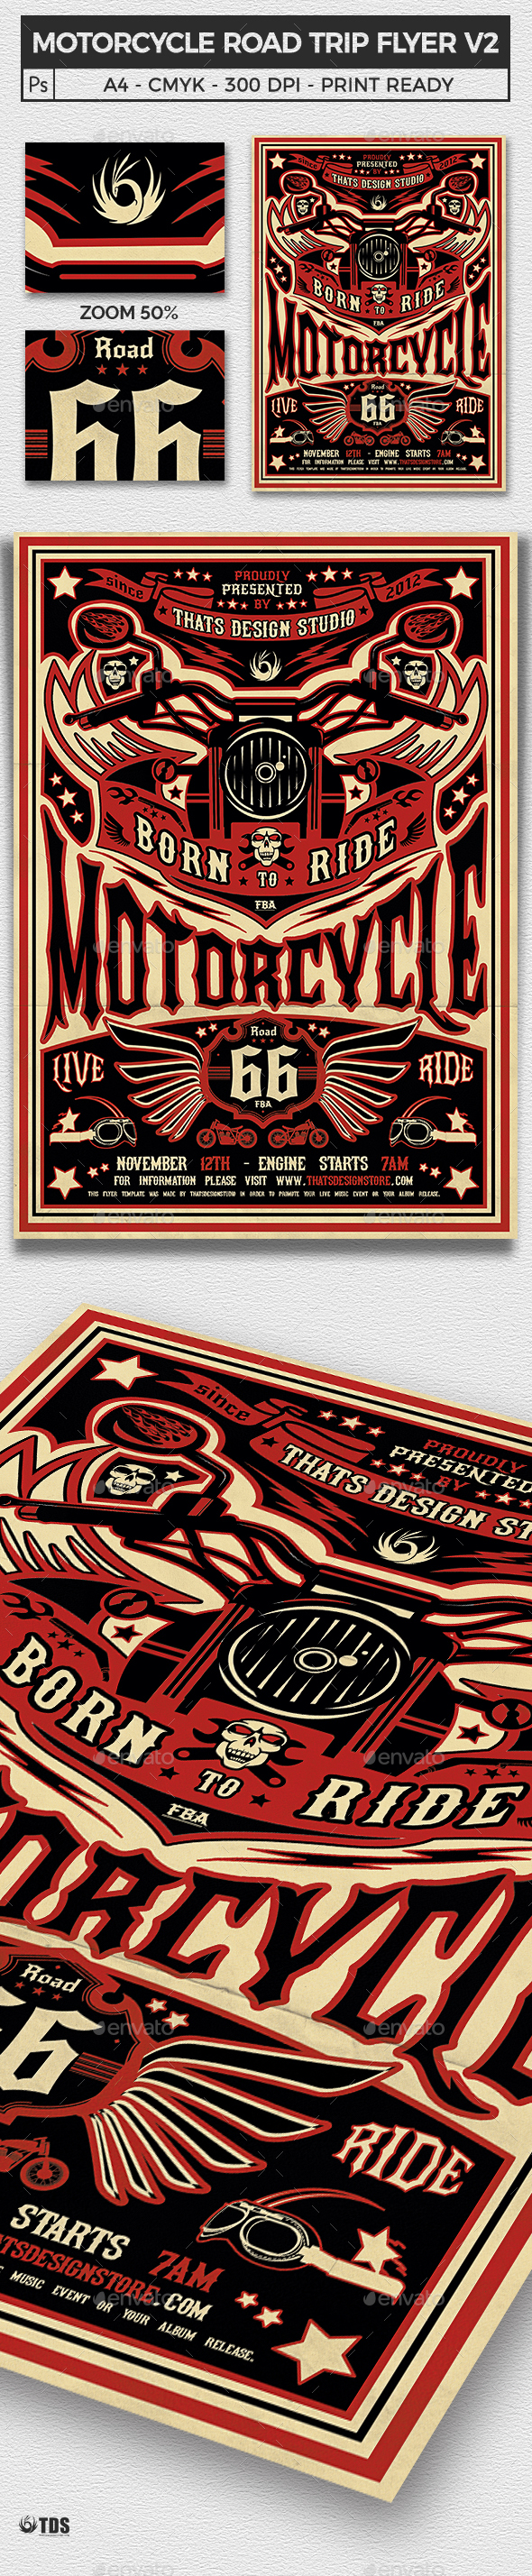 Motorcycle Road Trip Flyer Template V2 - Events Flyers